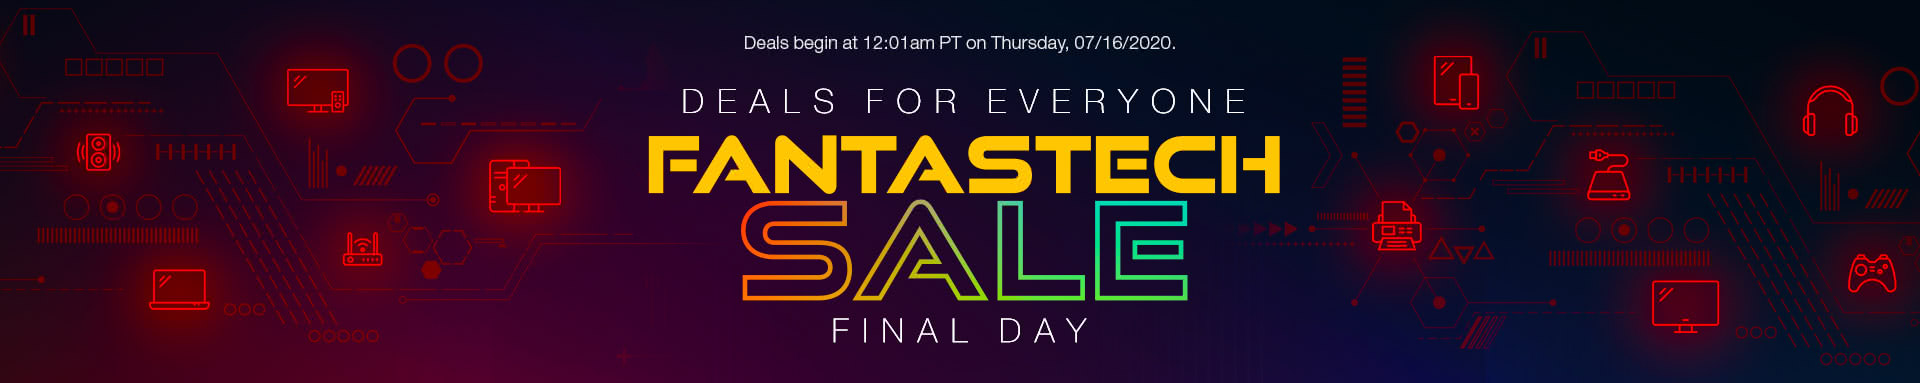 DEALS FOR EVERYONE FantasTech Sale Final Day